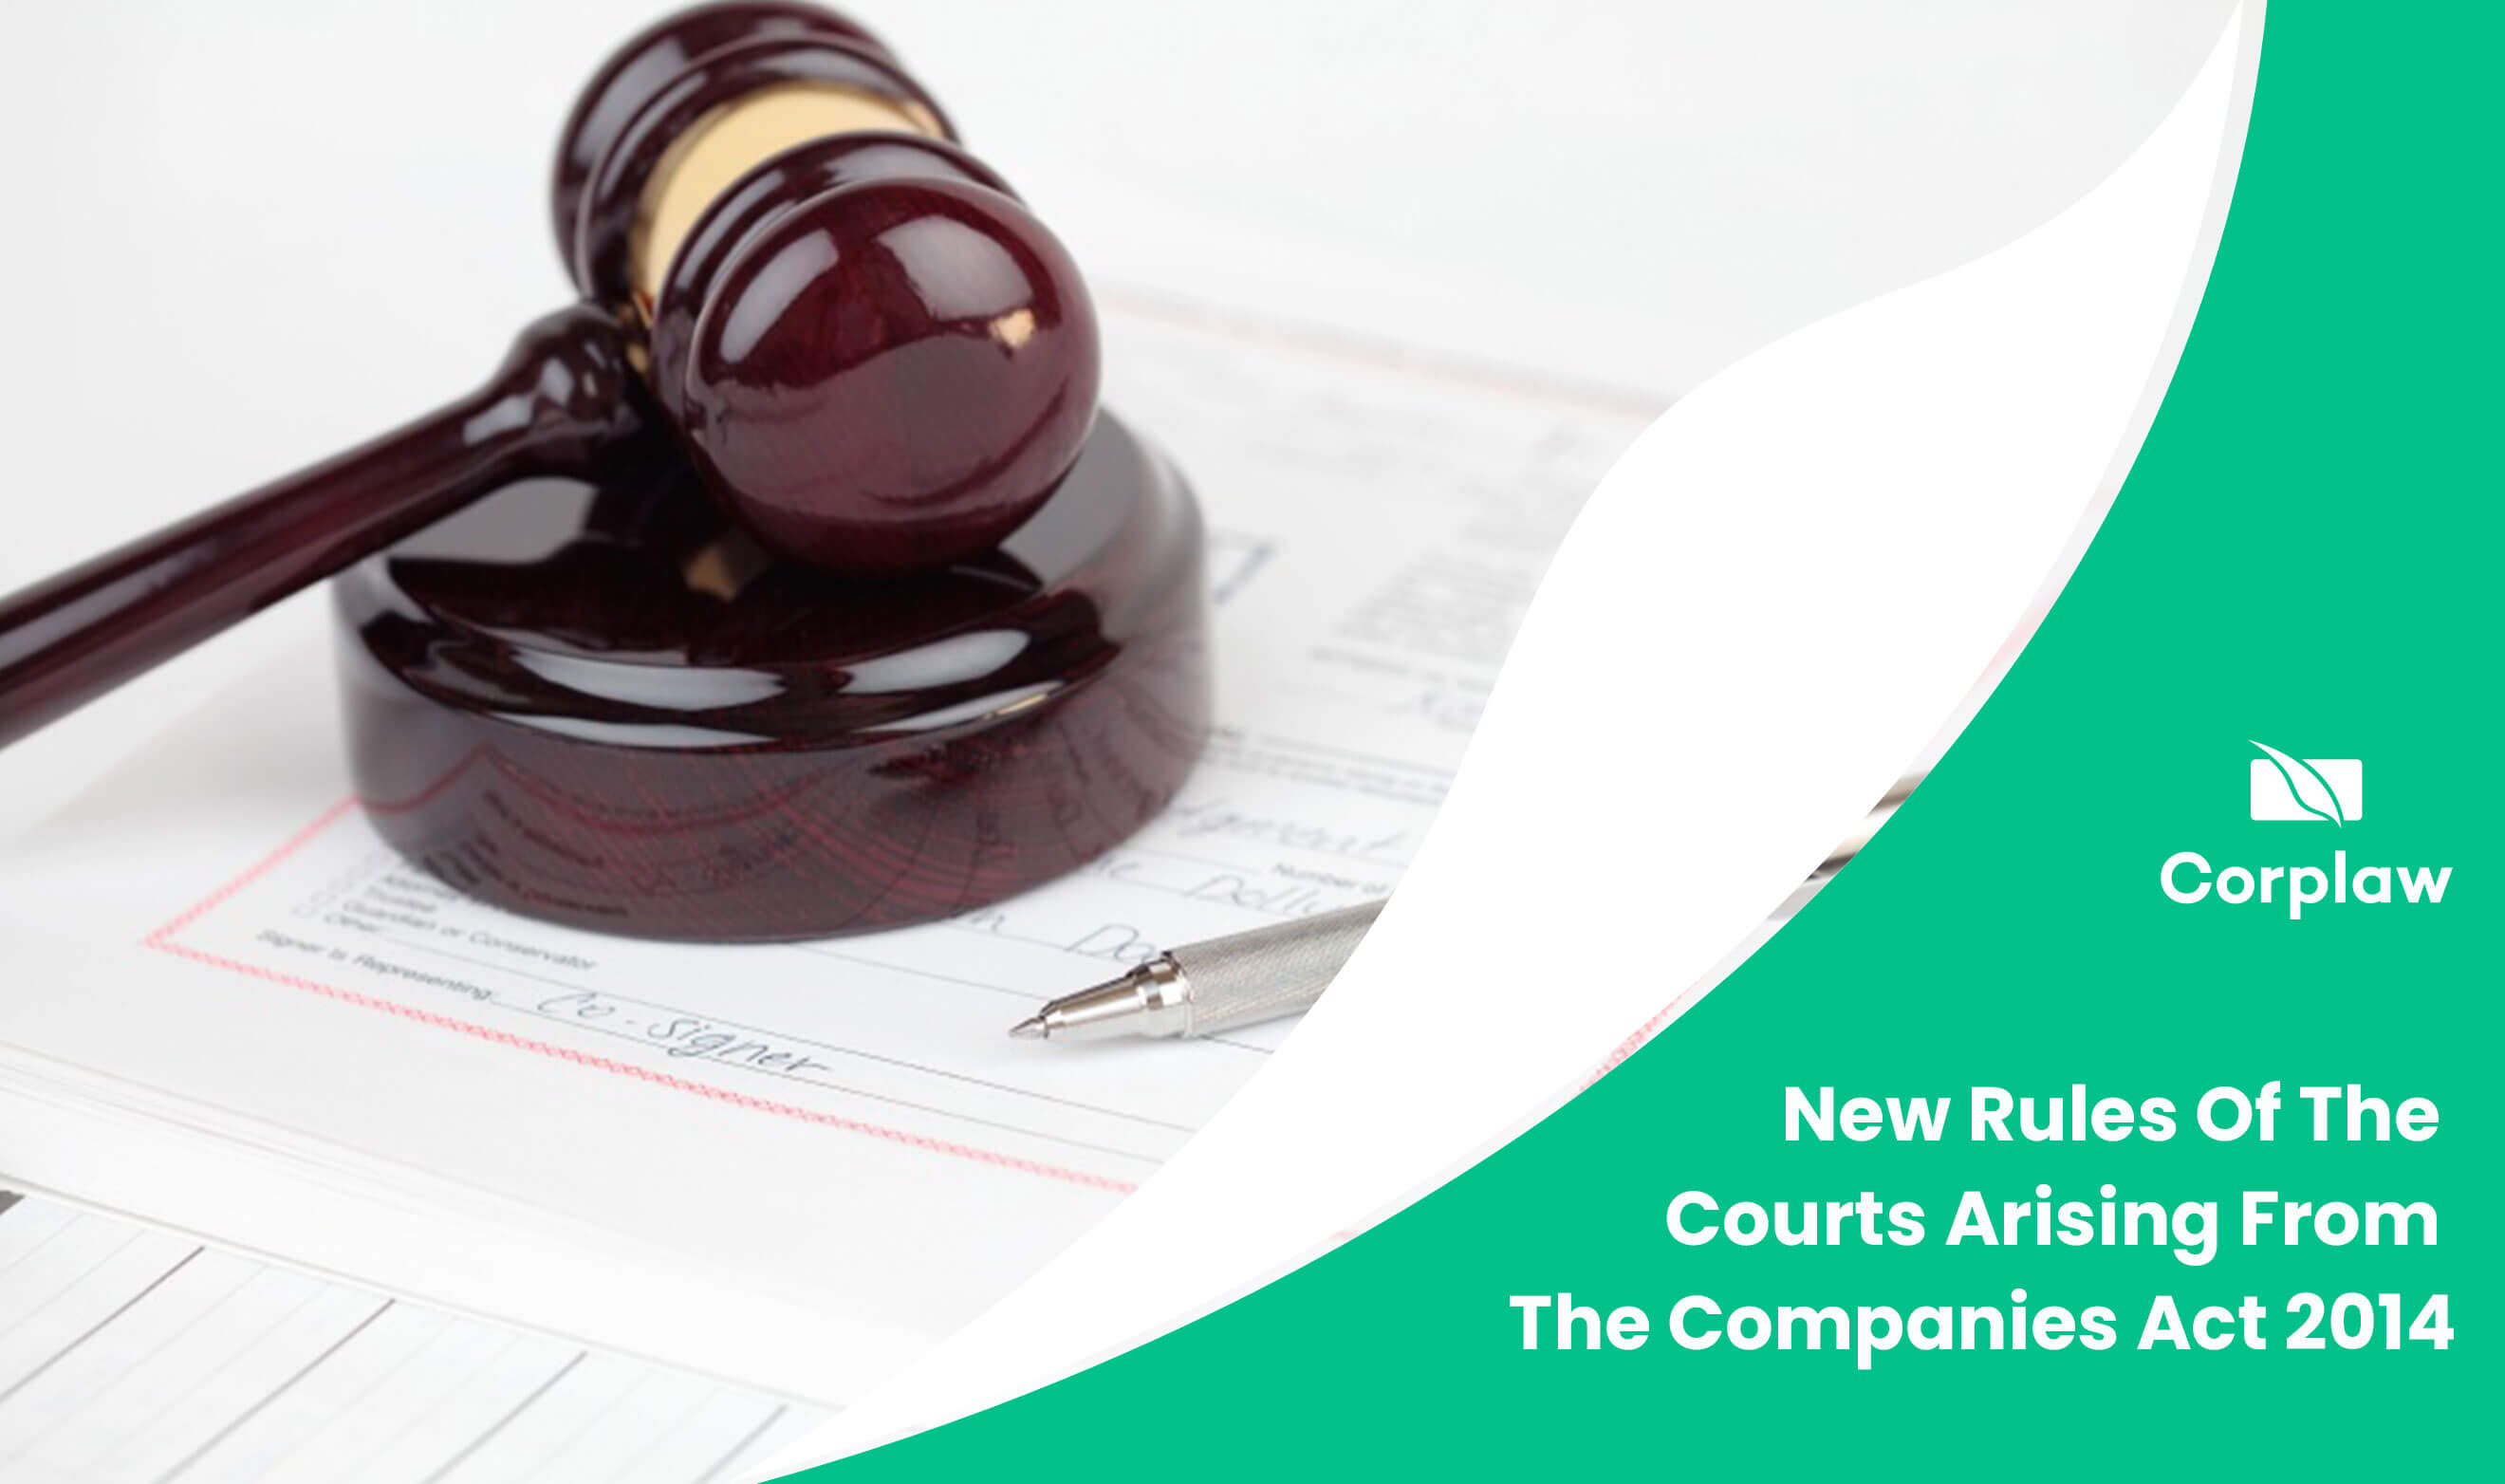 Corplaw-Blog-New-Rules-Of-The-Courts-Arising-From-The-Companies-Act-2014 (1)